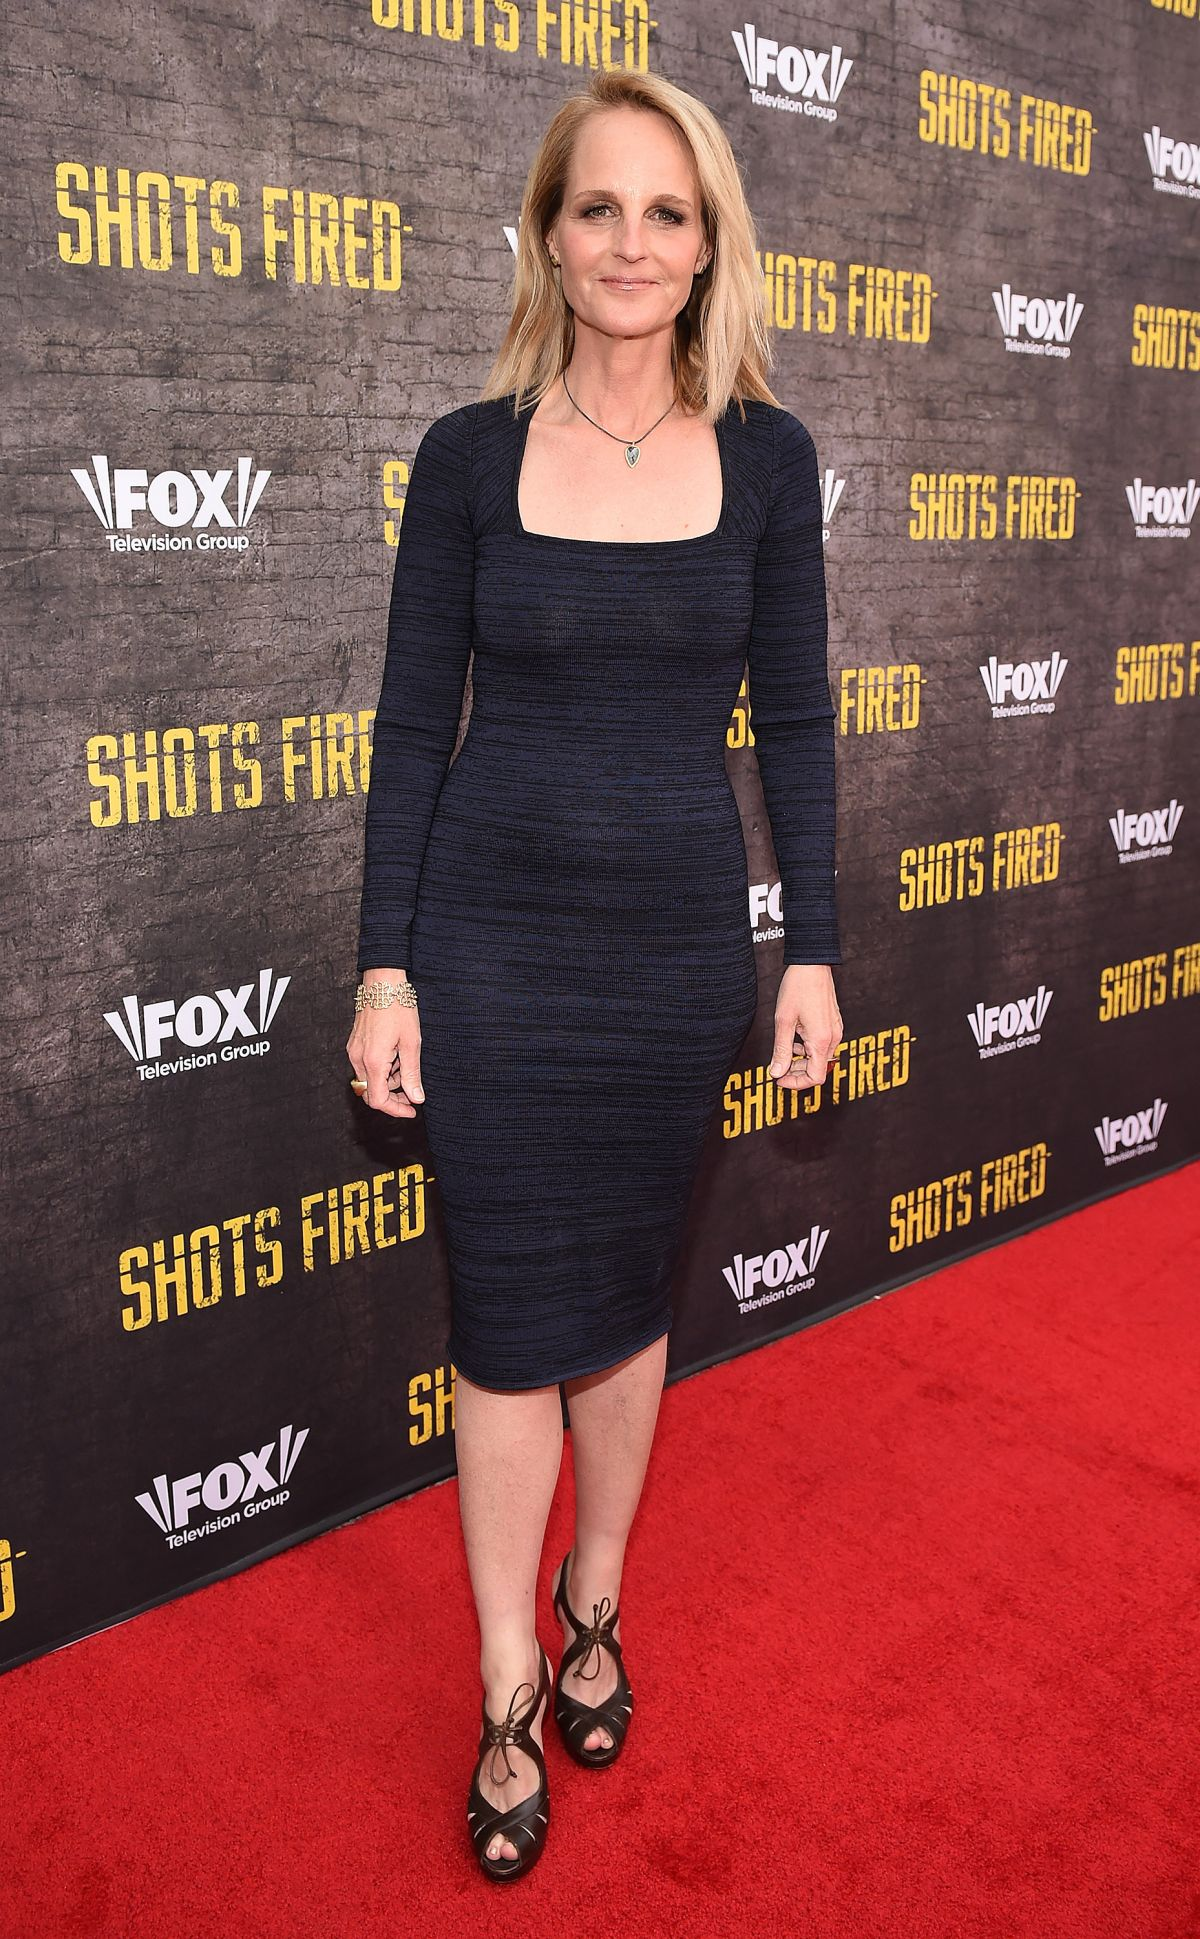 Helen Hunt At Shots Fired Screening In Los Angeles 05 10